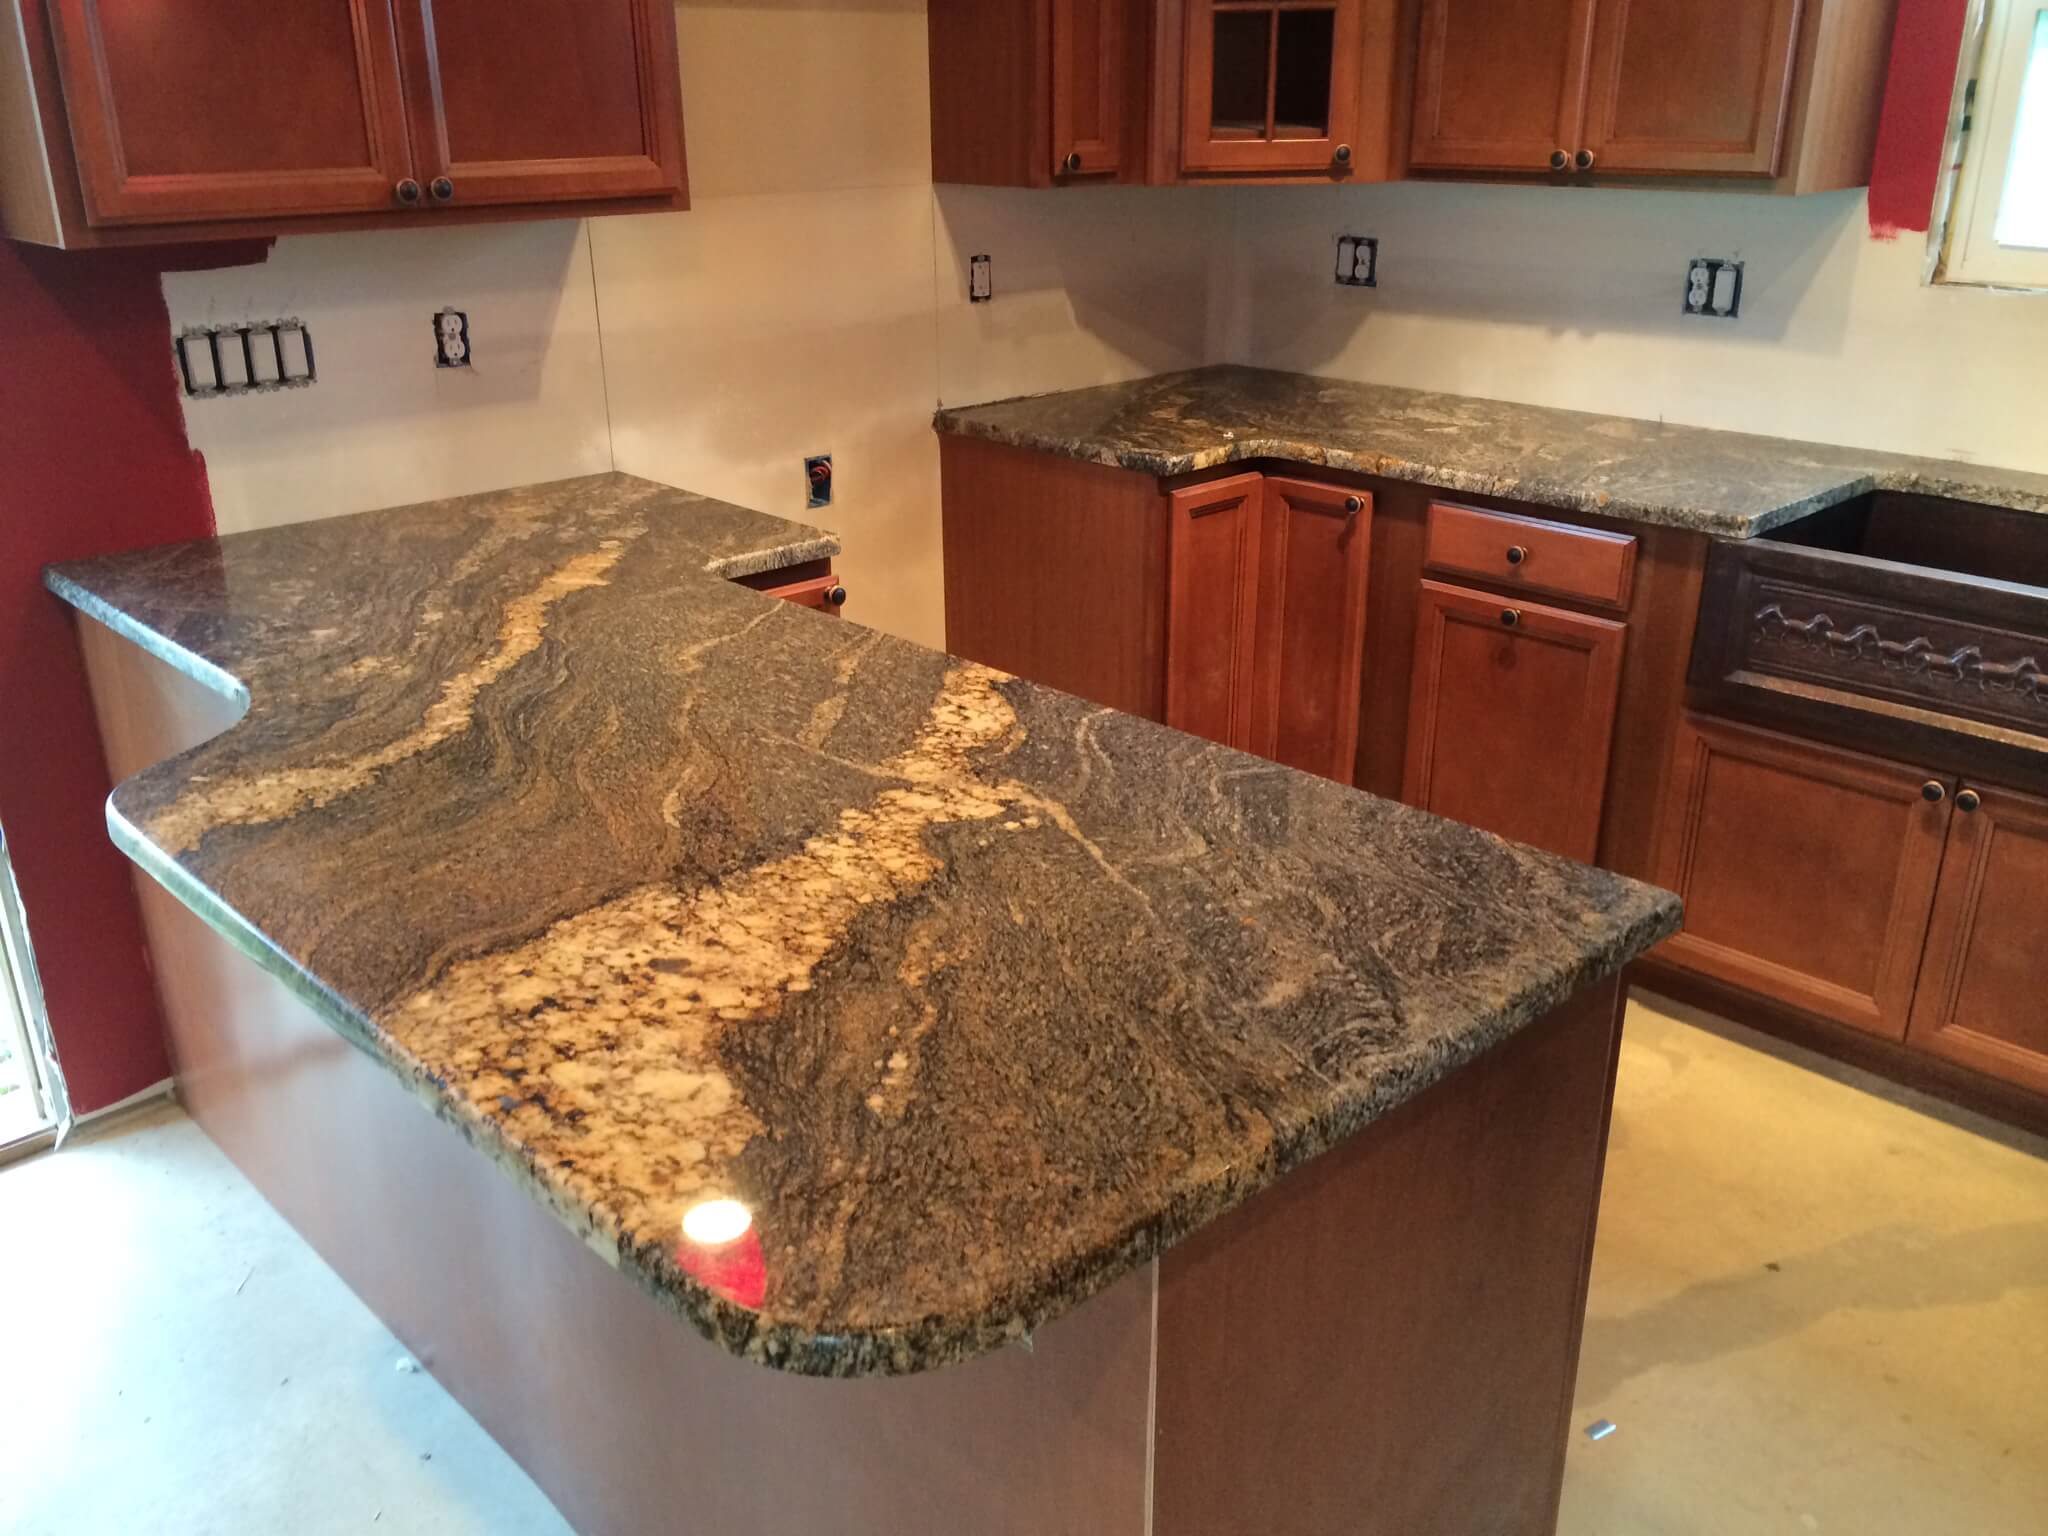 Natural Way To Clean Granite Countertops 35sq Ft Granite Countertops Cleveland Kitchen Quartz